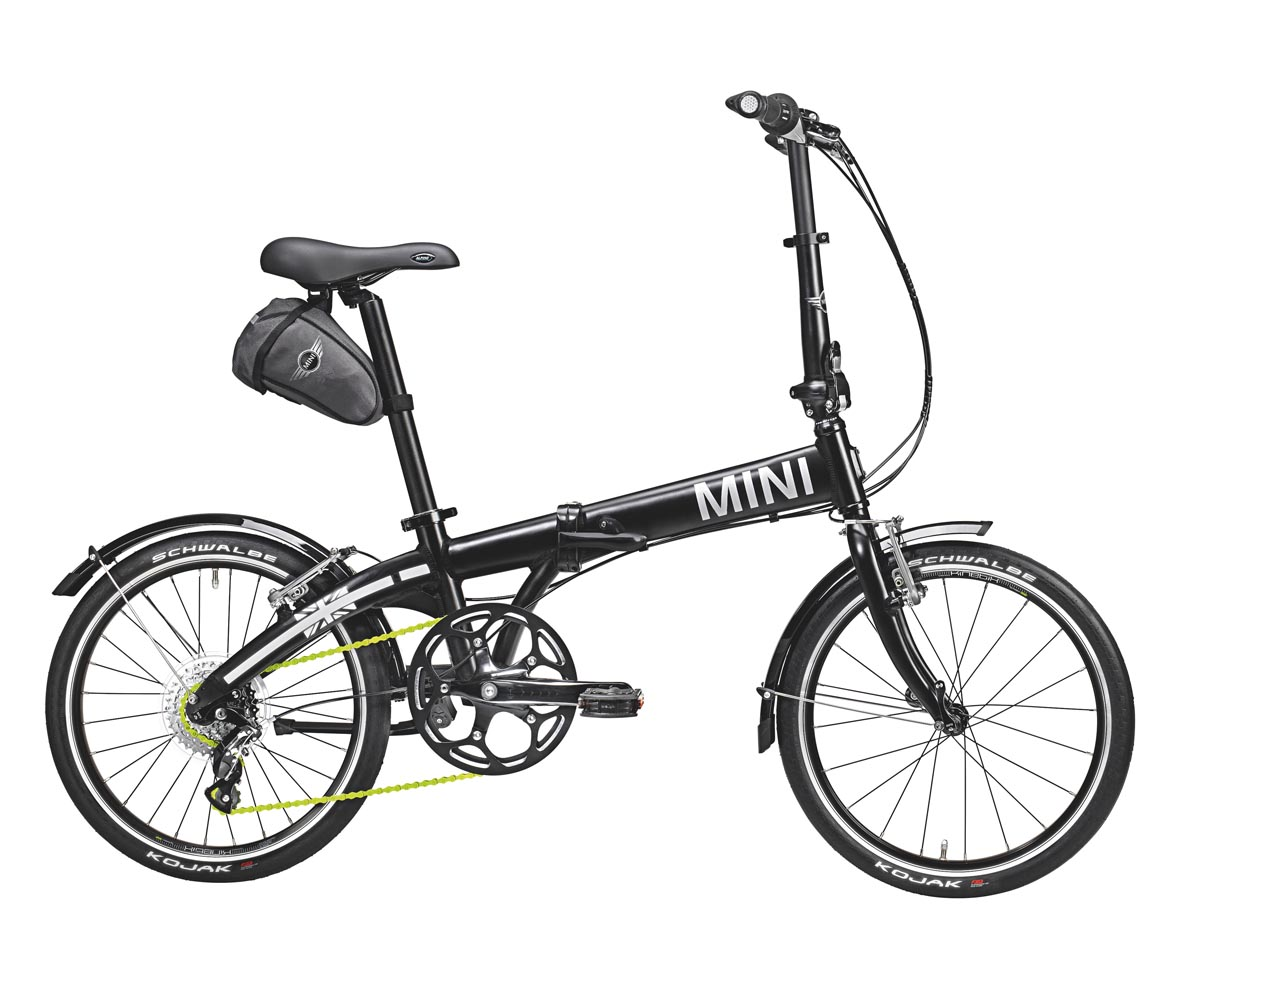 https://www.bikefolded.com/wp-content/uploads/2016/02/01-mini-folding-bike.jpg